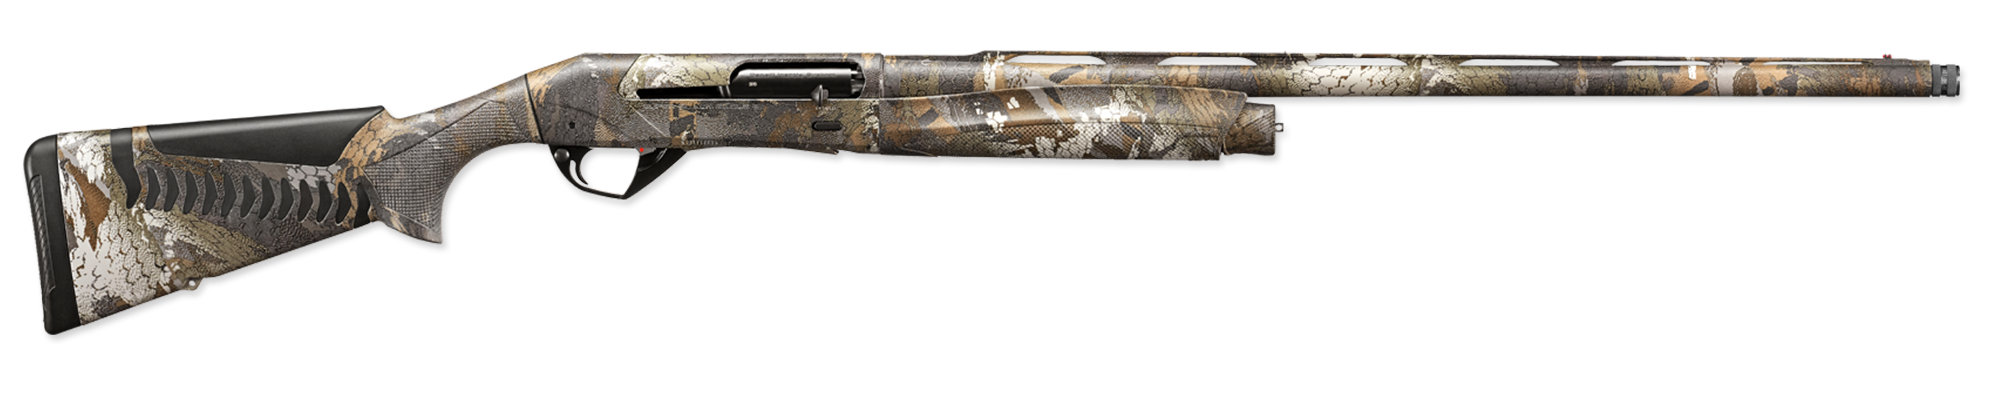 Benelli Super Black Eagle III Gore Optifade Shotgun